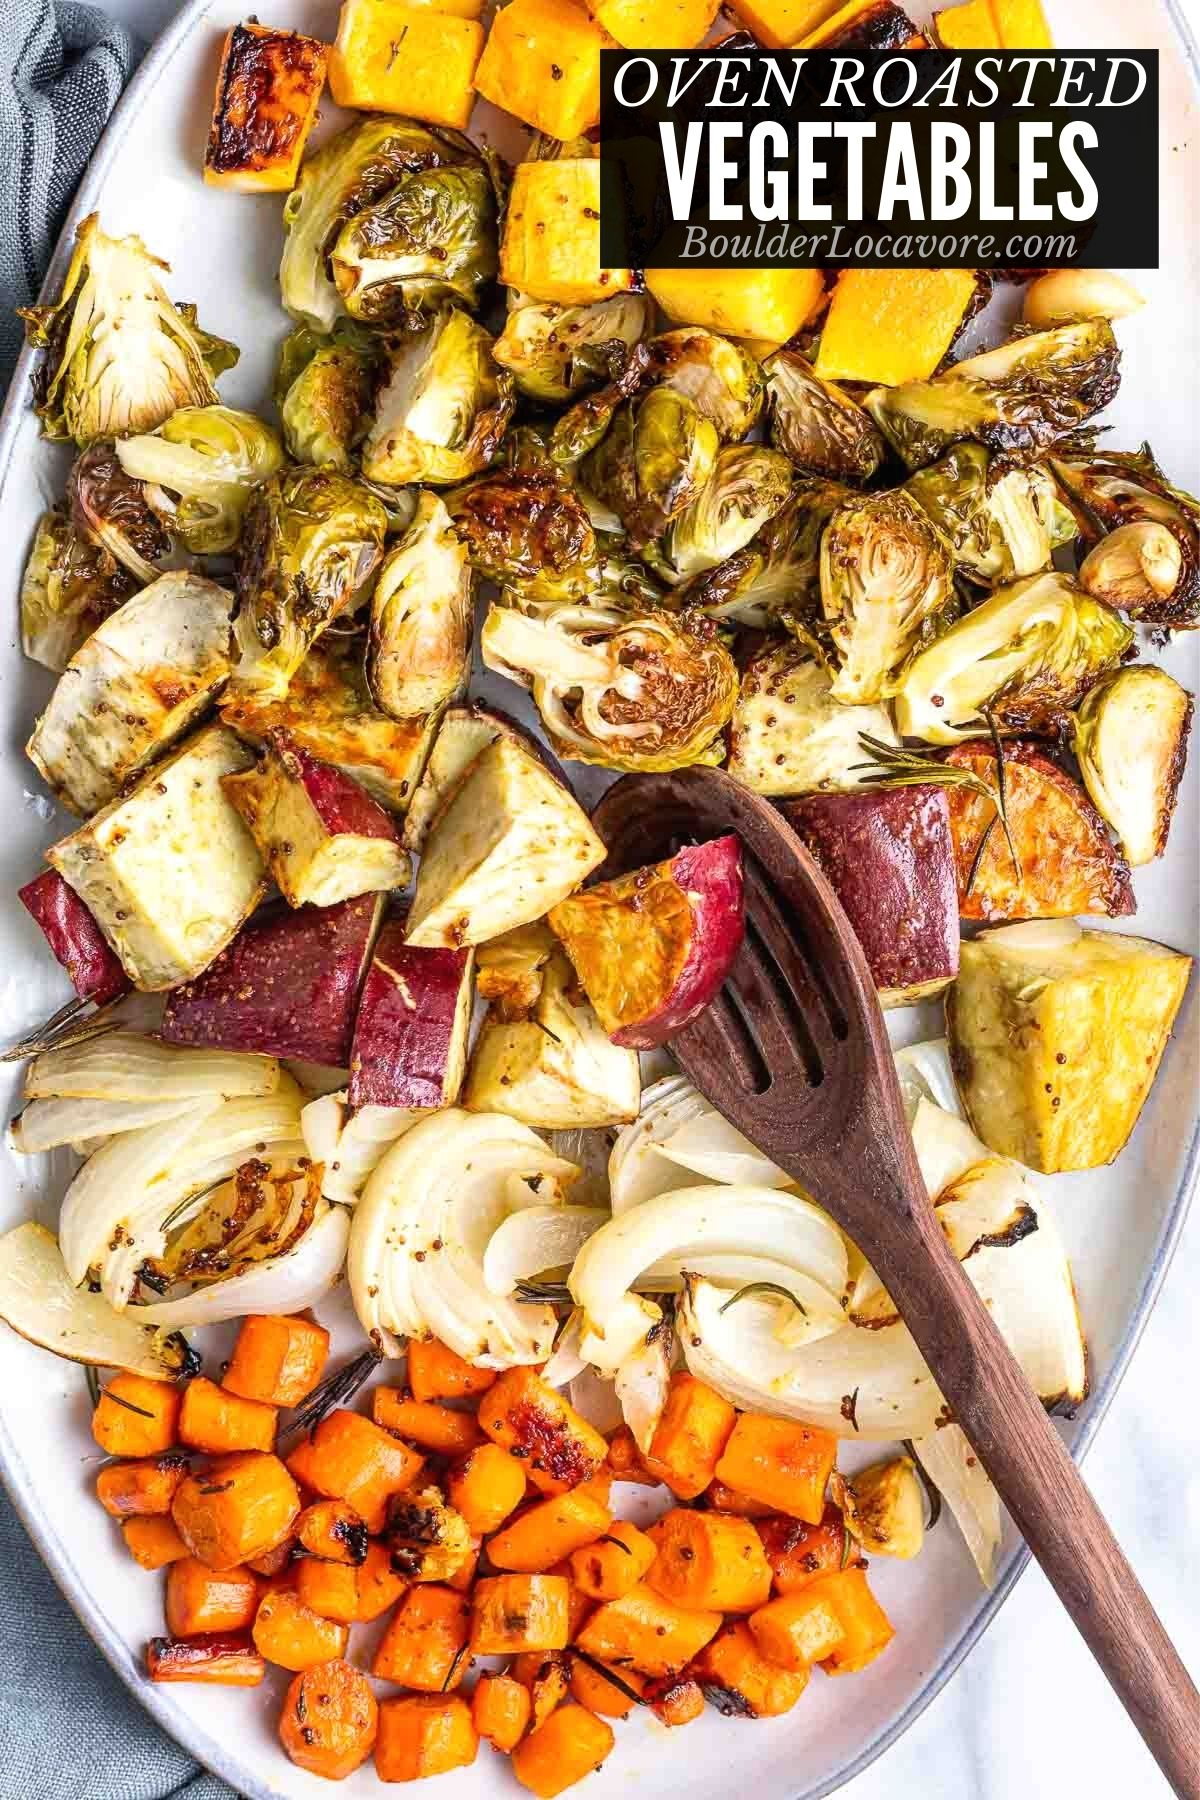 OVEN ROASTED VEGETABLES TITLE IMAGE